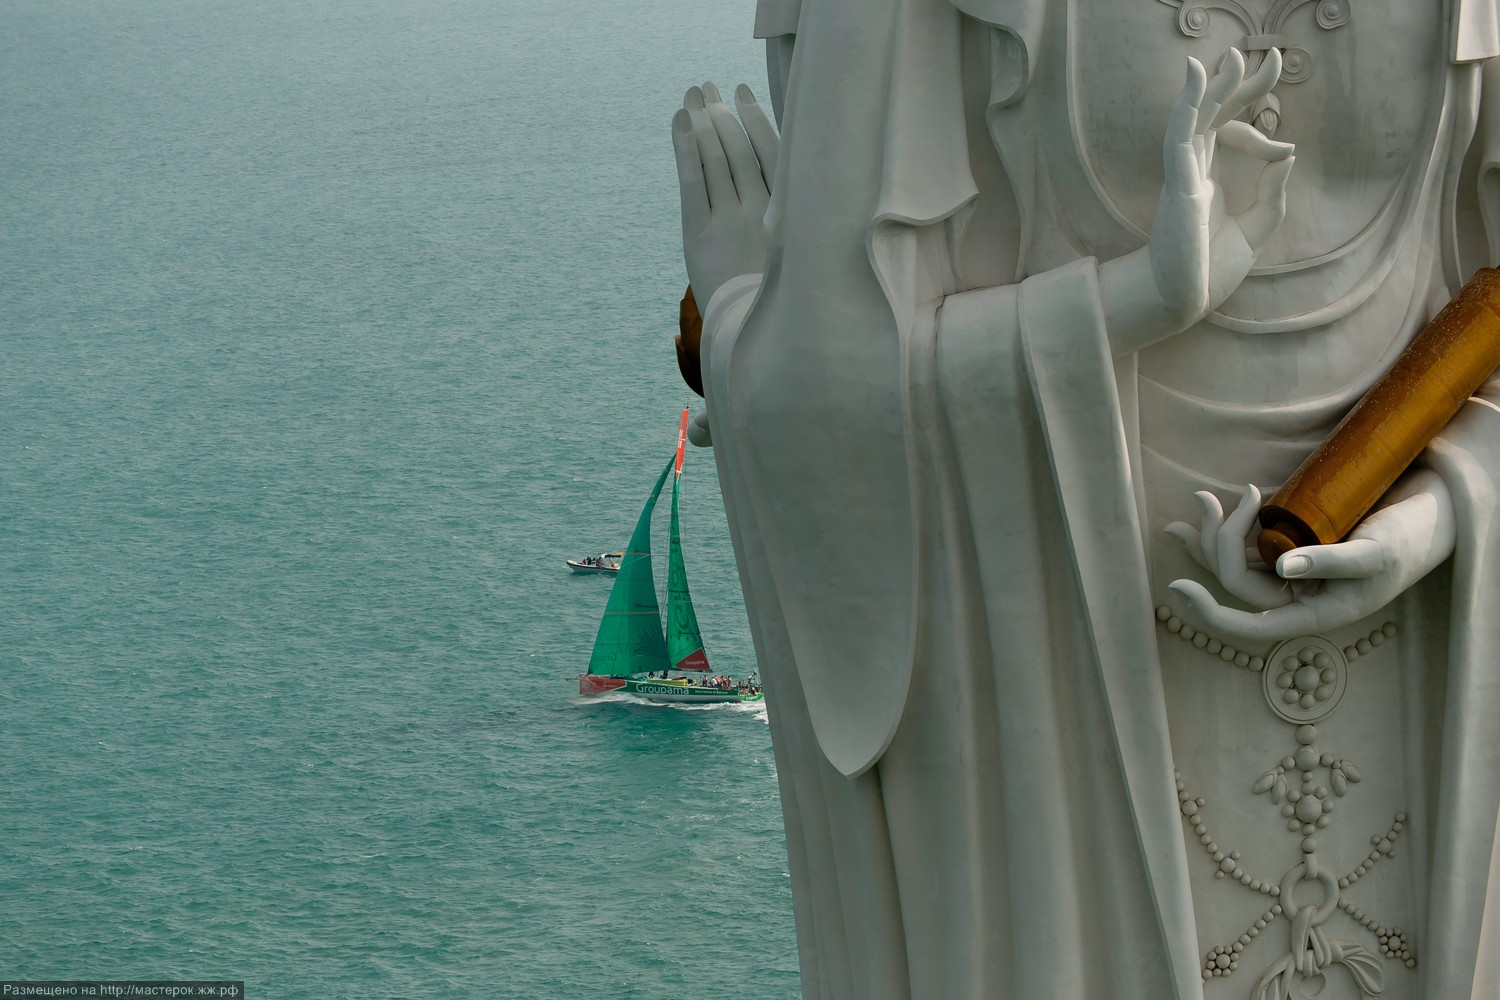 Groupama Sailing Team, skippered by Franck Cammas from France, sails past the Guan Yin of the South Sea of Sanya, at the start of leg 4 of the Volvo Ocean Race 2011-12, from Sanya, China to Auckland, New Zealand. (Credit: PAUL TODD/Volvo Ocean Race)